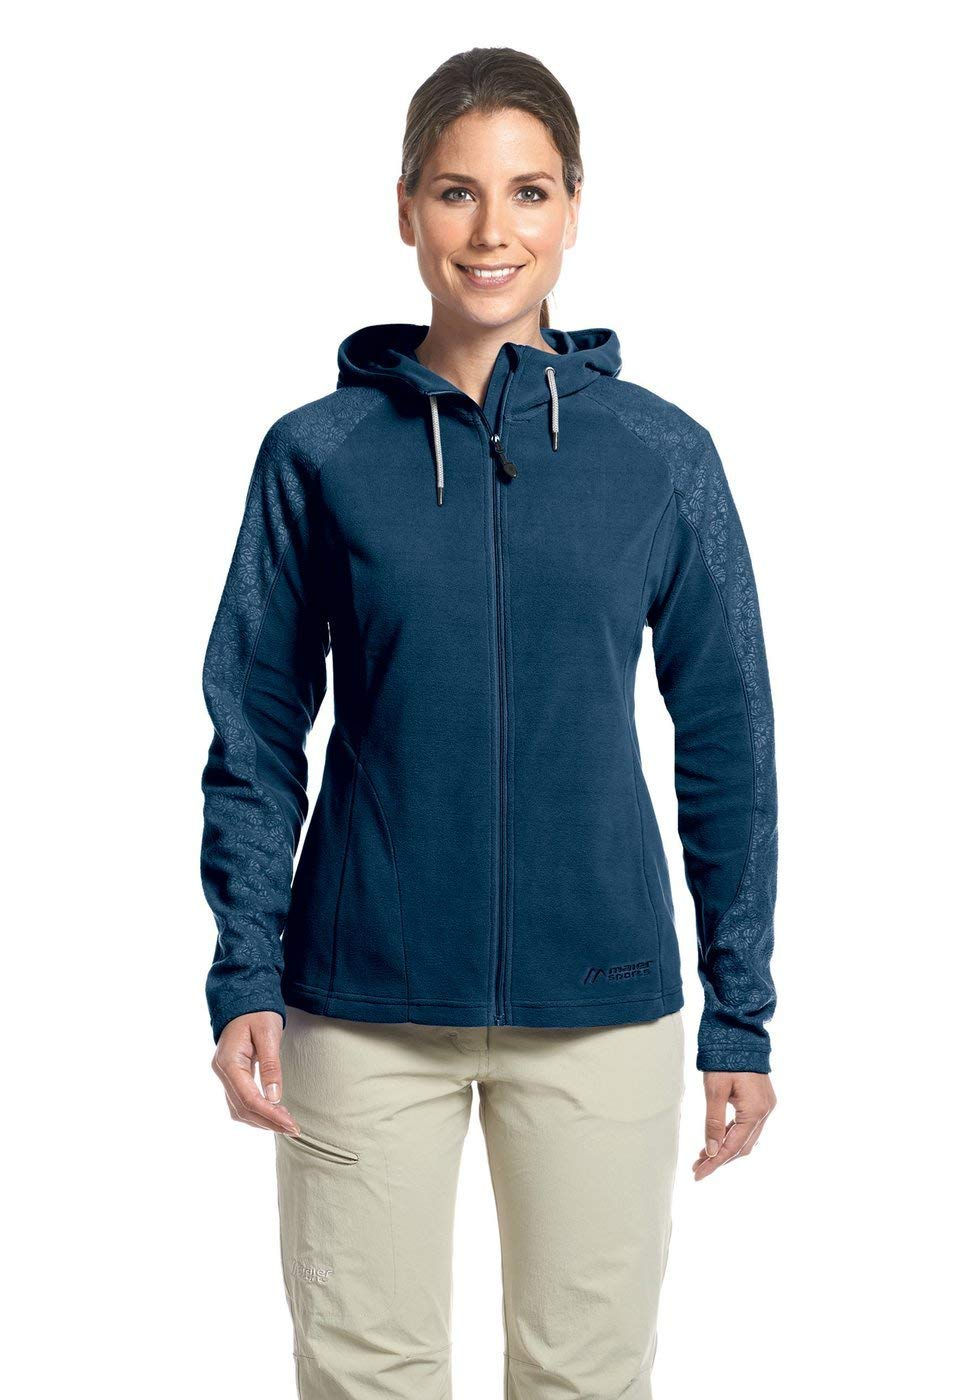 Maier Sports Damen Fleecejacke Quadra - aviator -